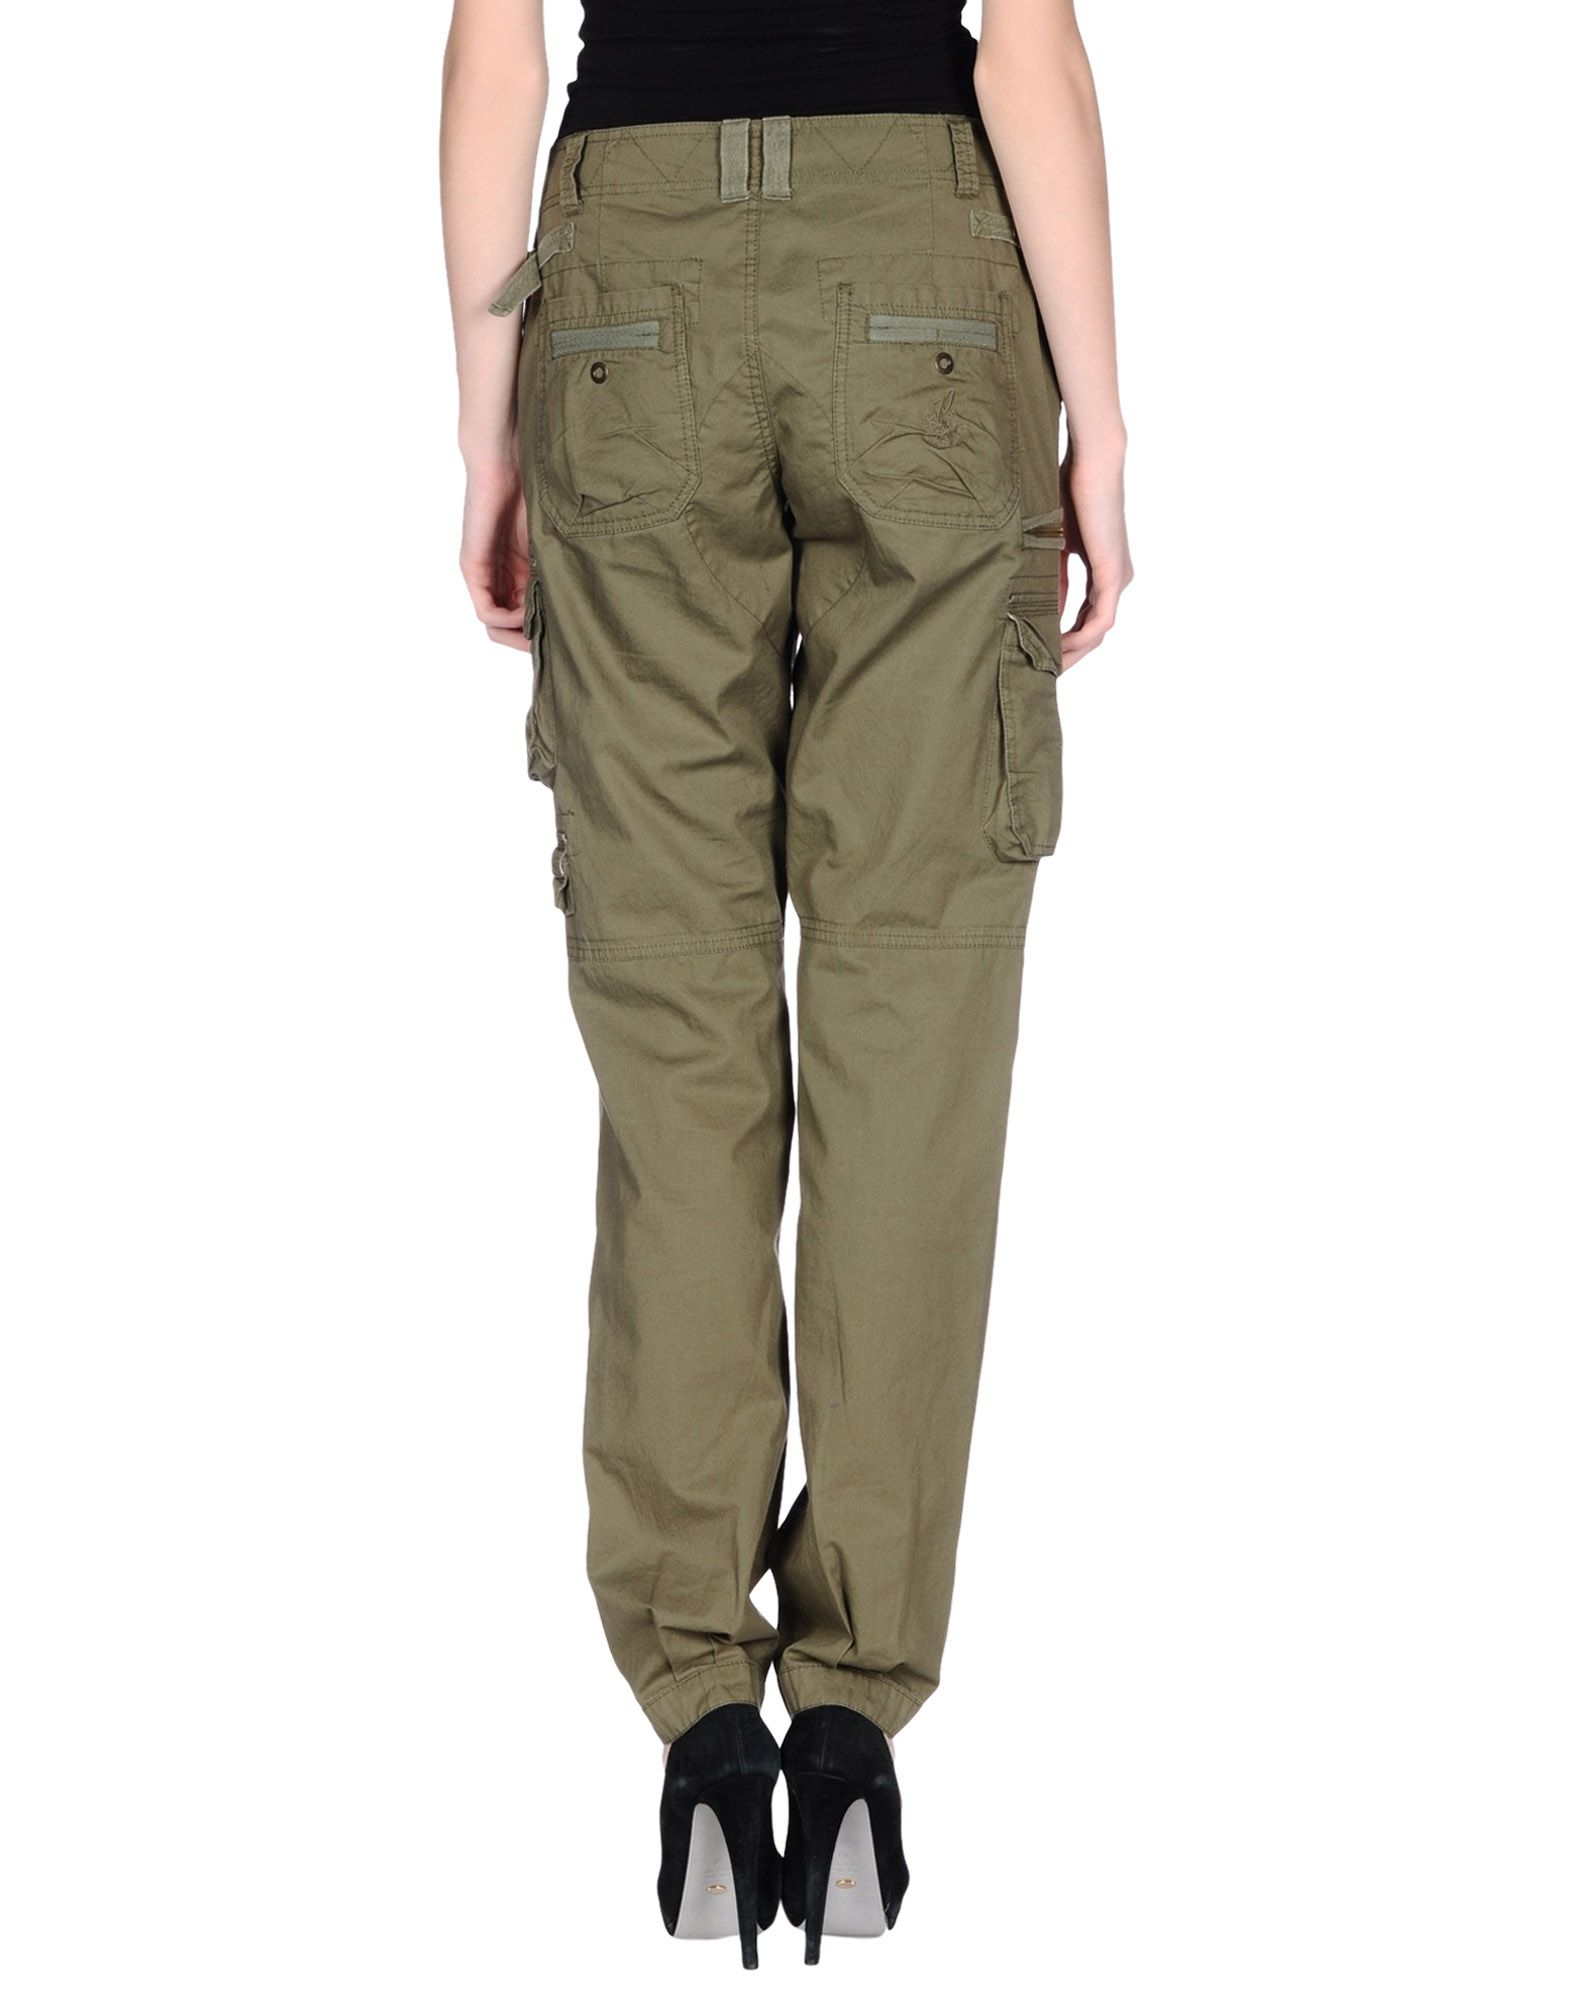 Pepe Jeans Cotton Casual Pants in Military Green (Green)